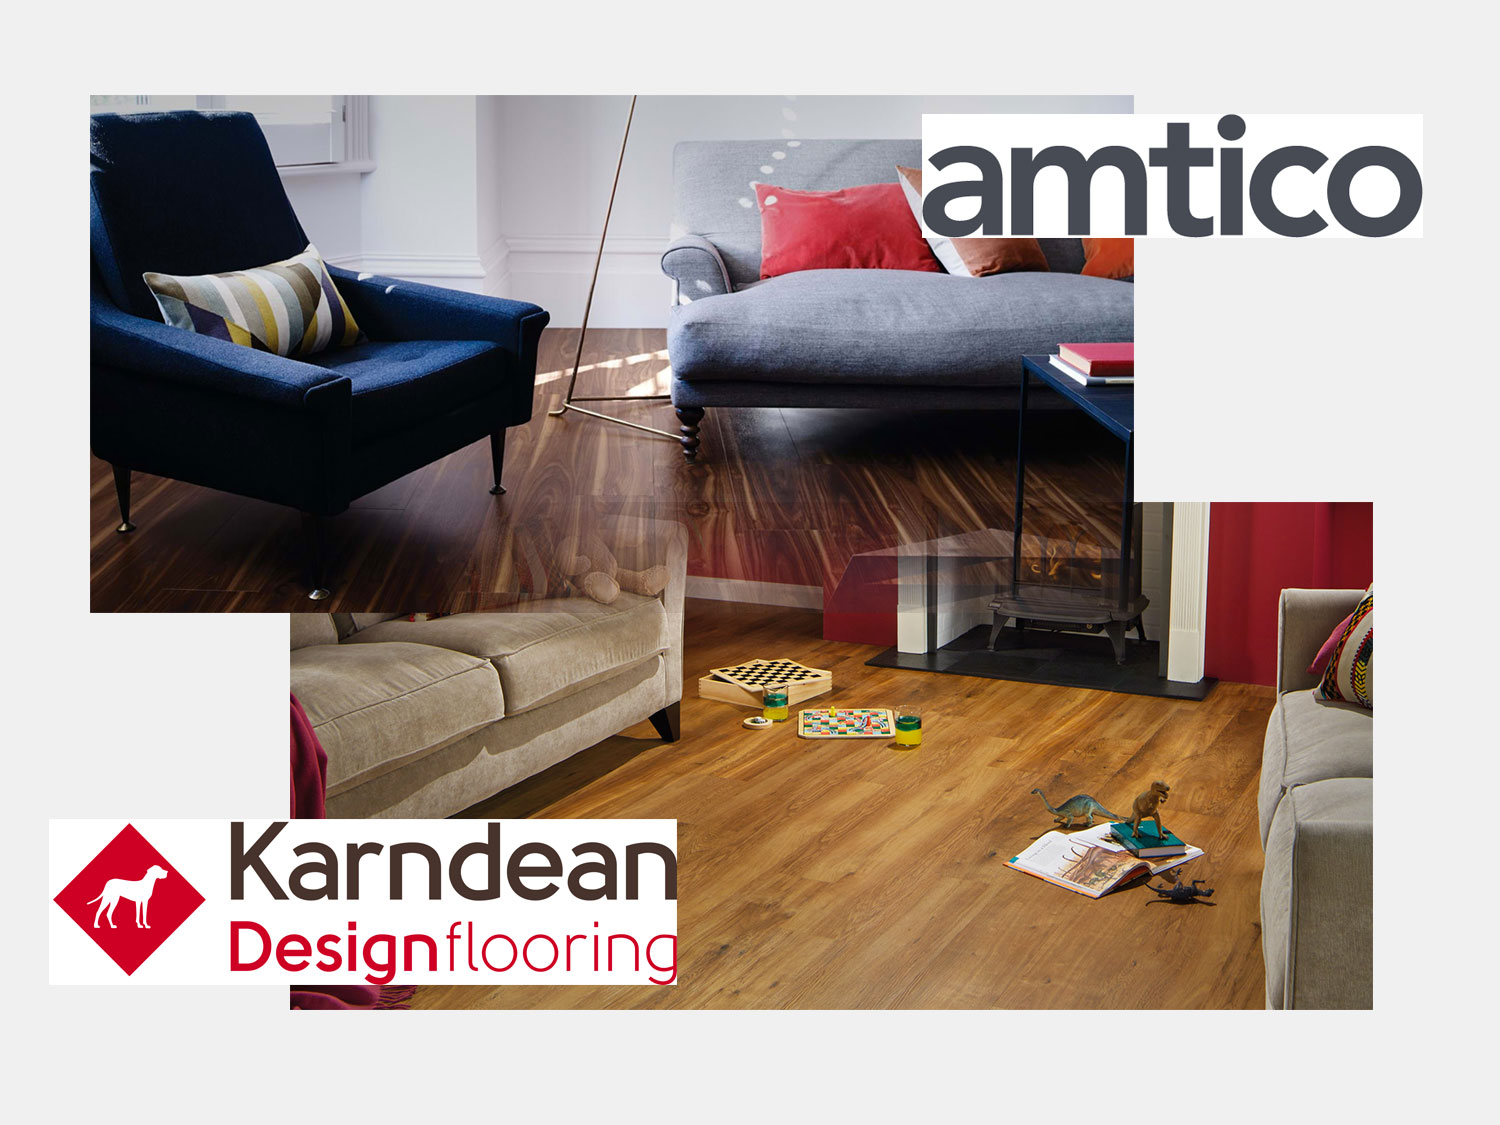 Karndean Or Amtico What S The Difference Hamilton Flooring